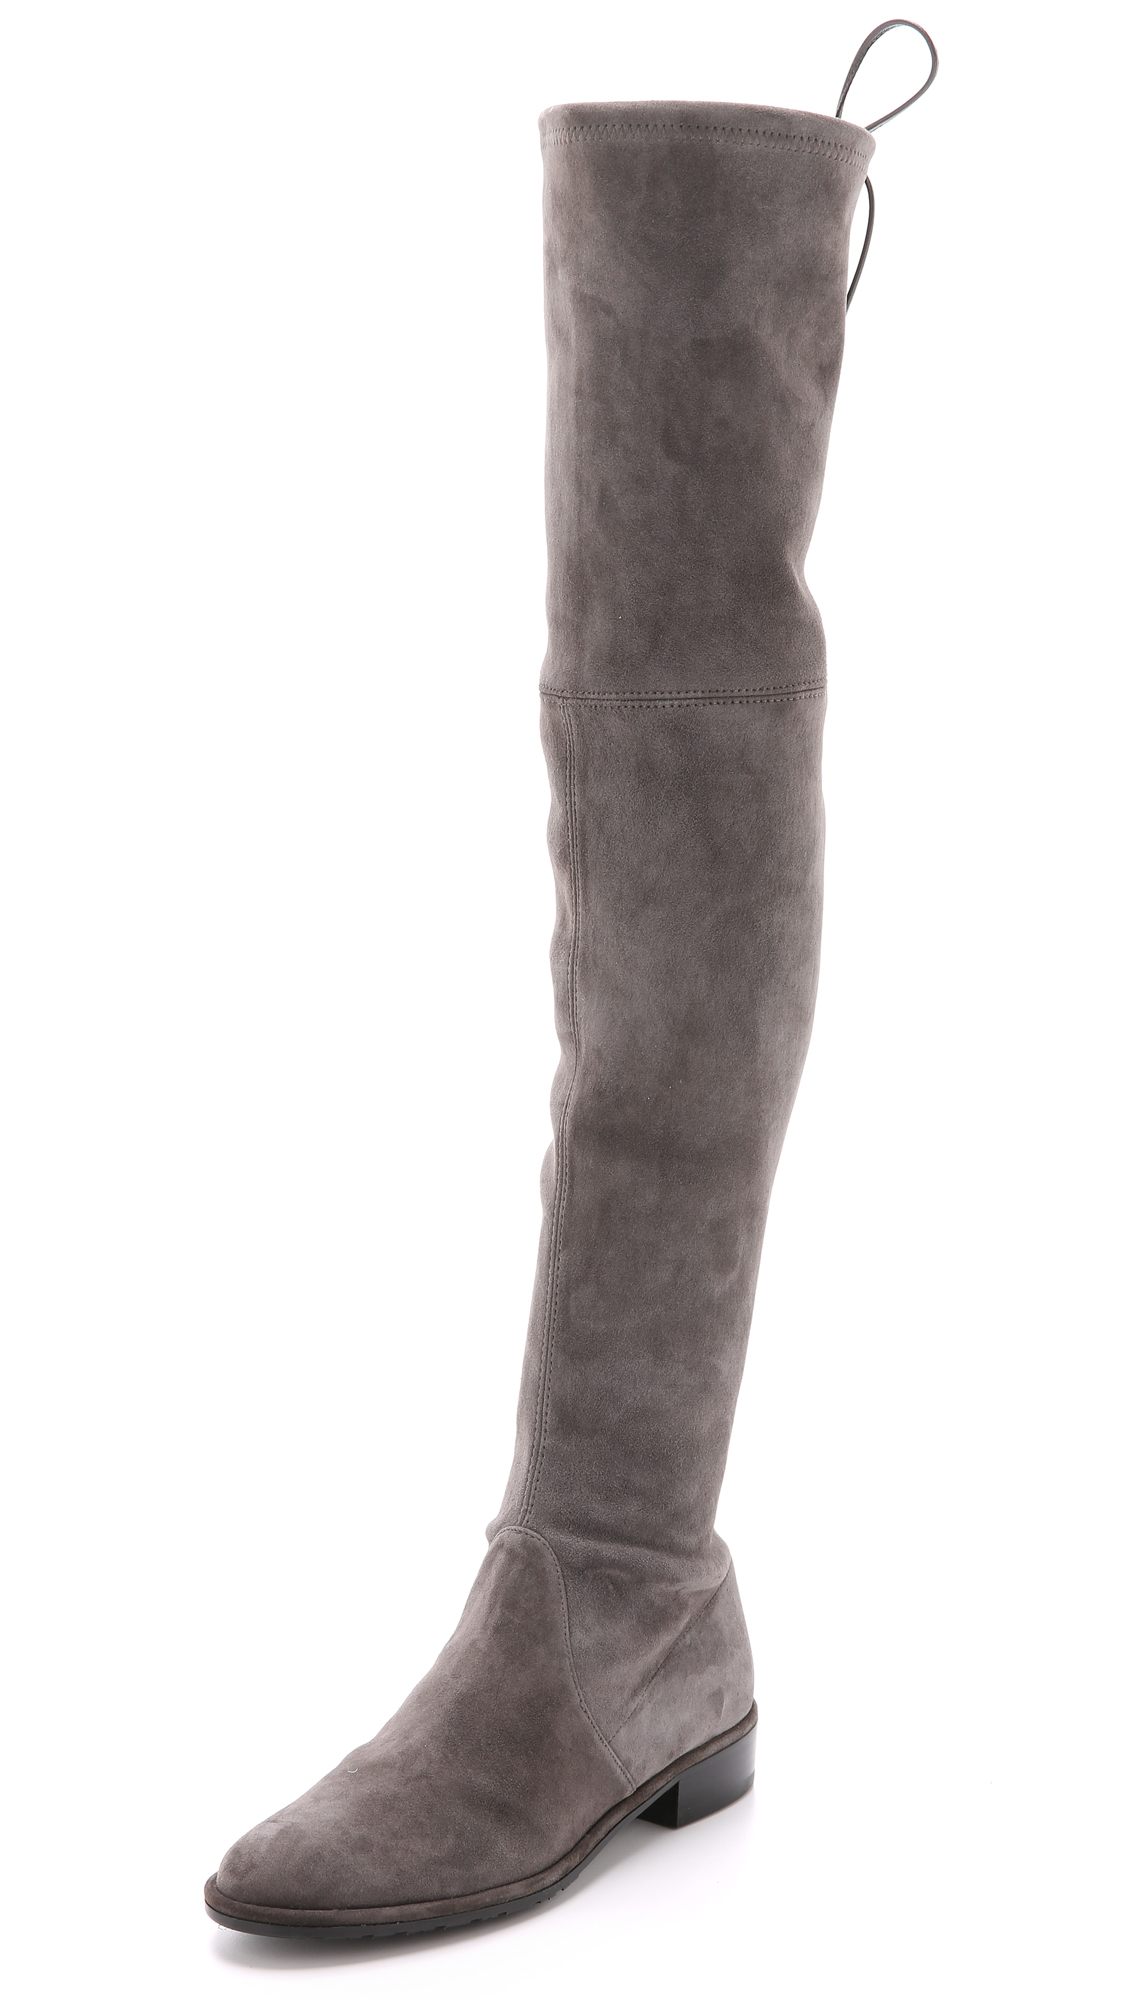 stuart weitzman lowland over the knee boots londra in gray londra lyst. Black Bedroom Furniture Sets. Home Design Ideas